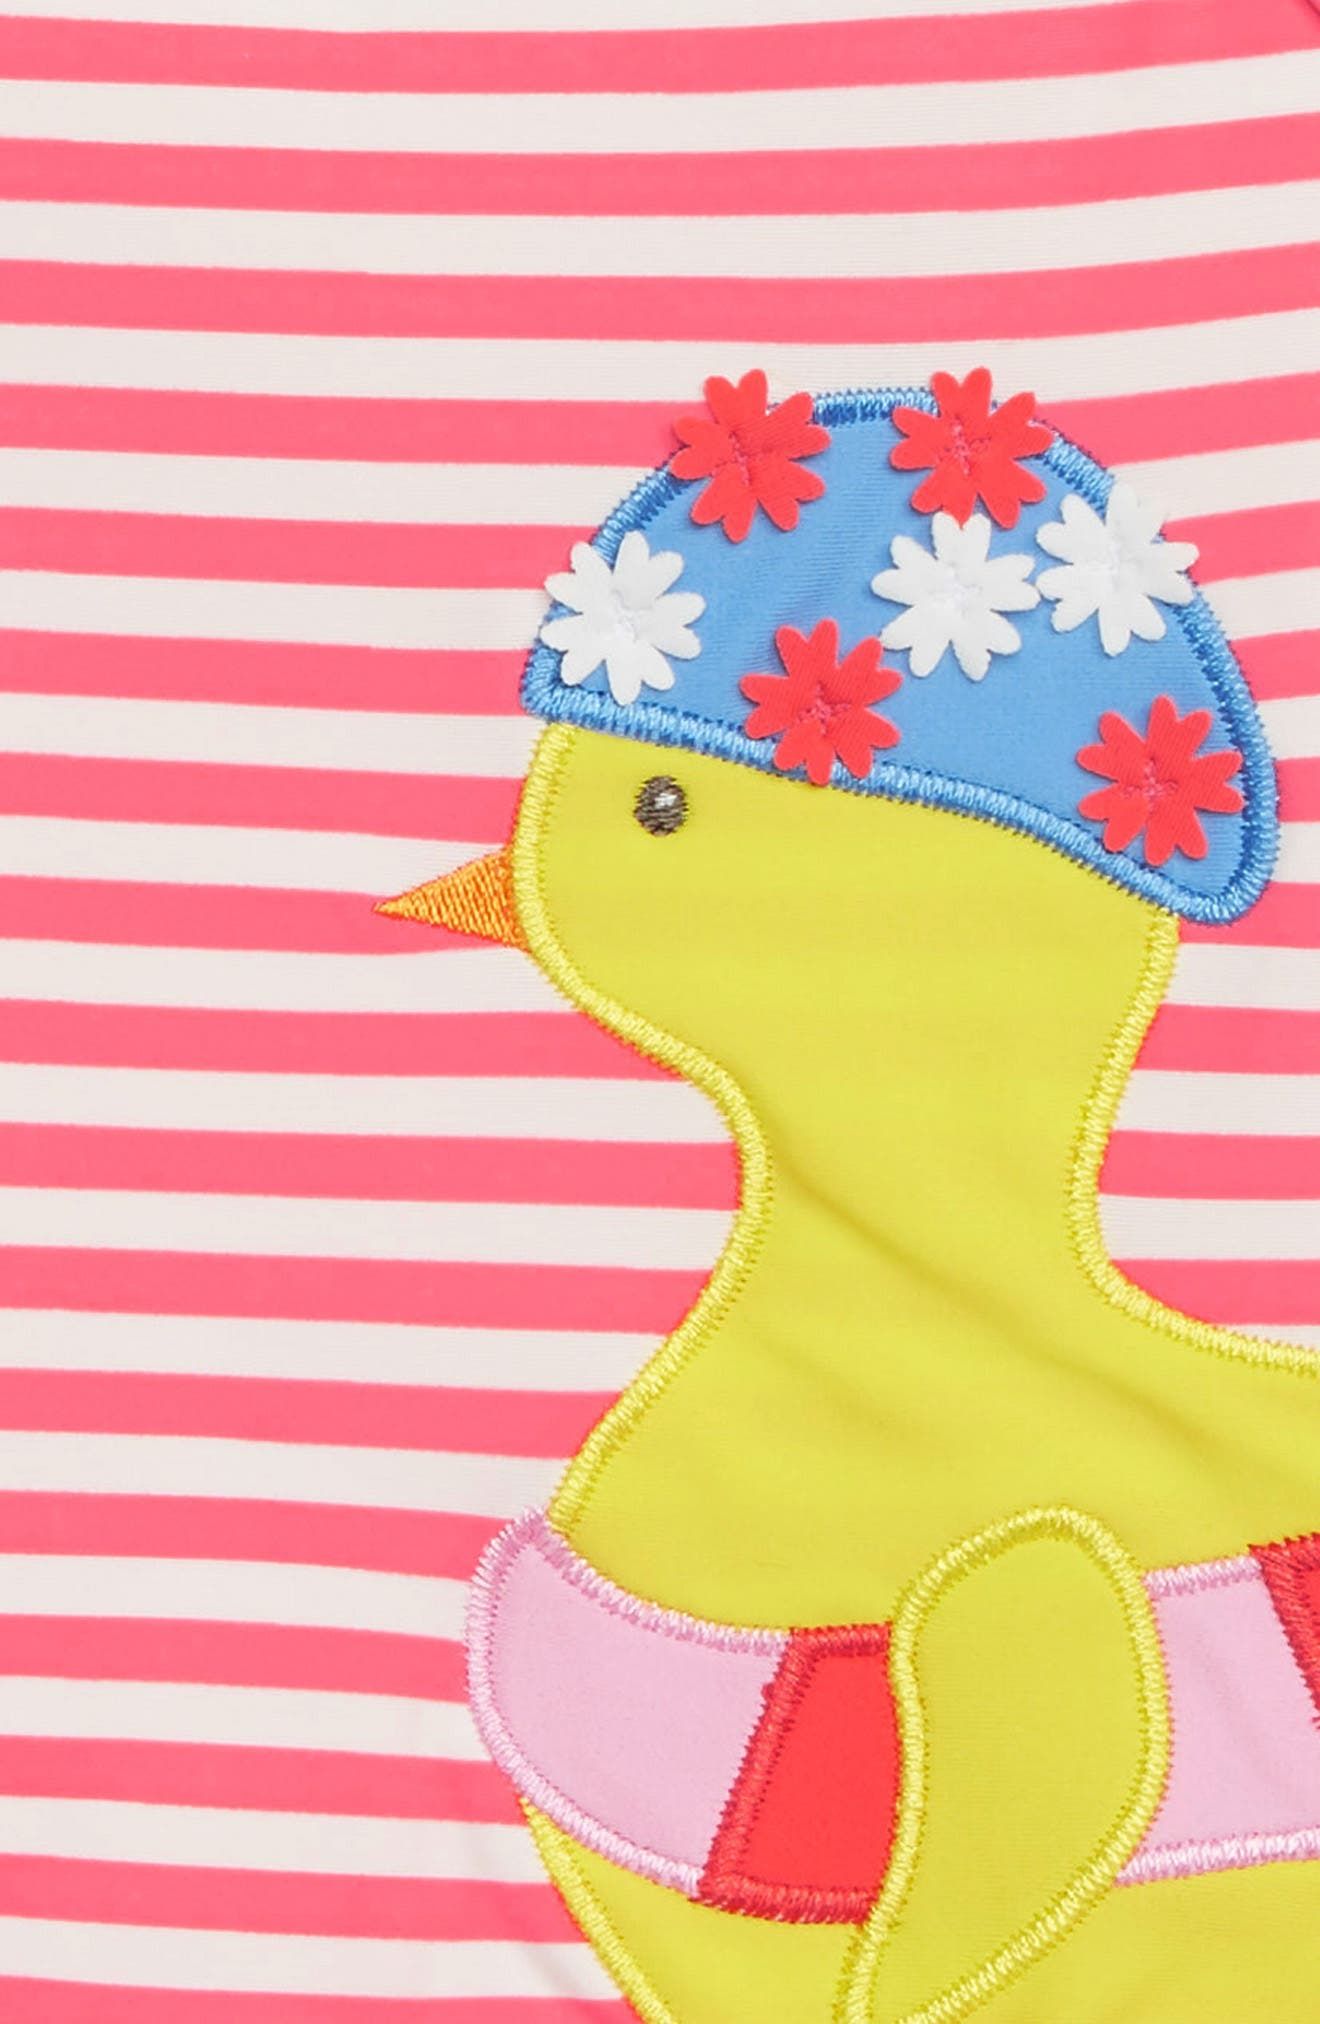 Pretty Frill Appliqué One-Piece Swimsuit,                             Alternate thumbnail 2, color,                             PNK BRUSH PINK/ IVORY CHICK